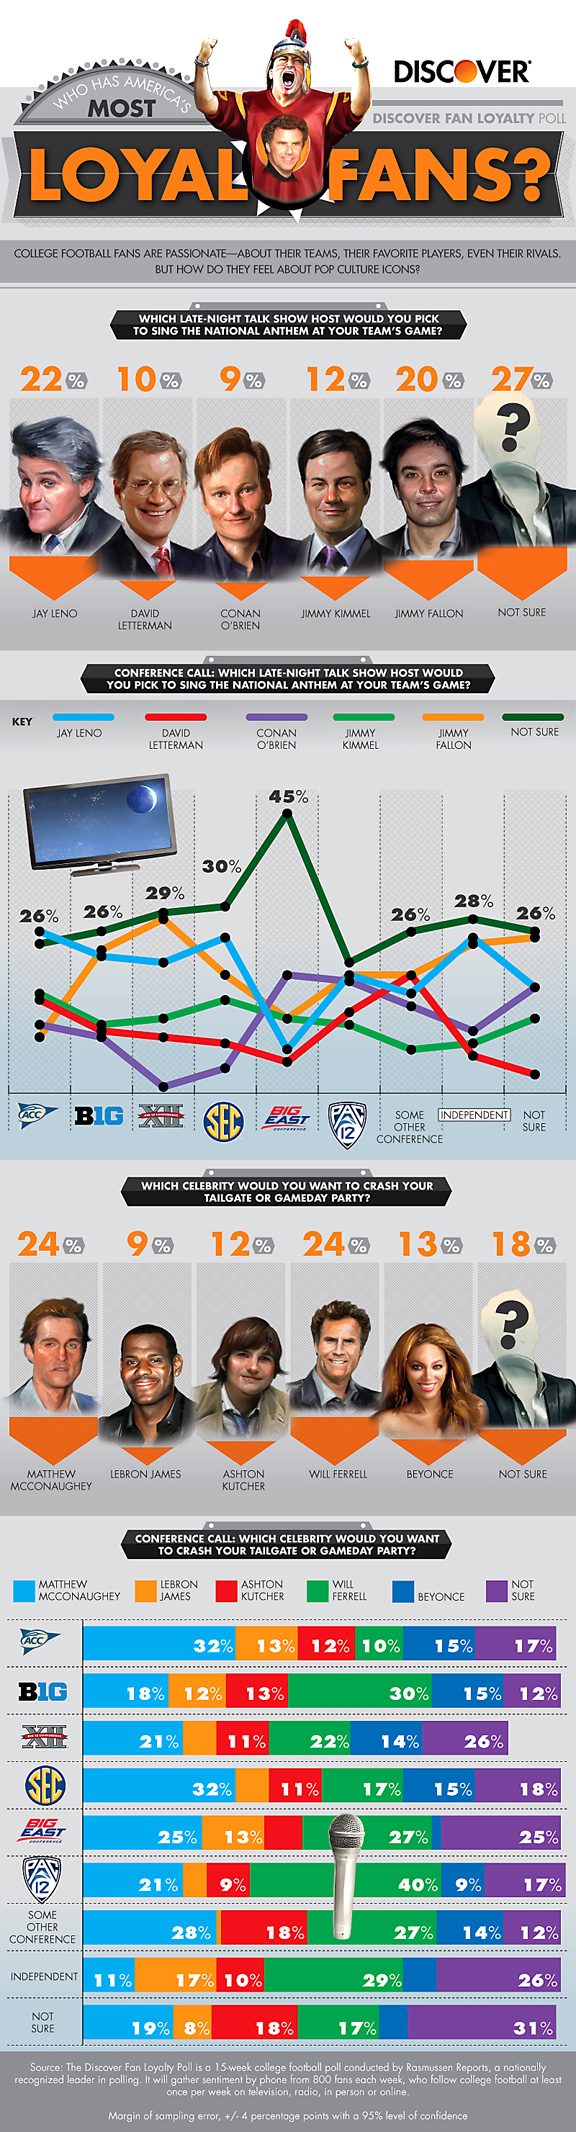 Discover fan loyalty poll on college football fans and celebrities